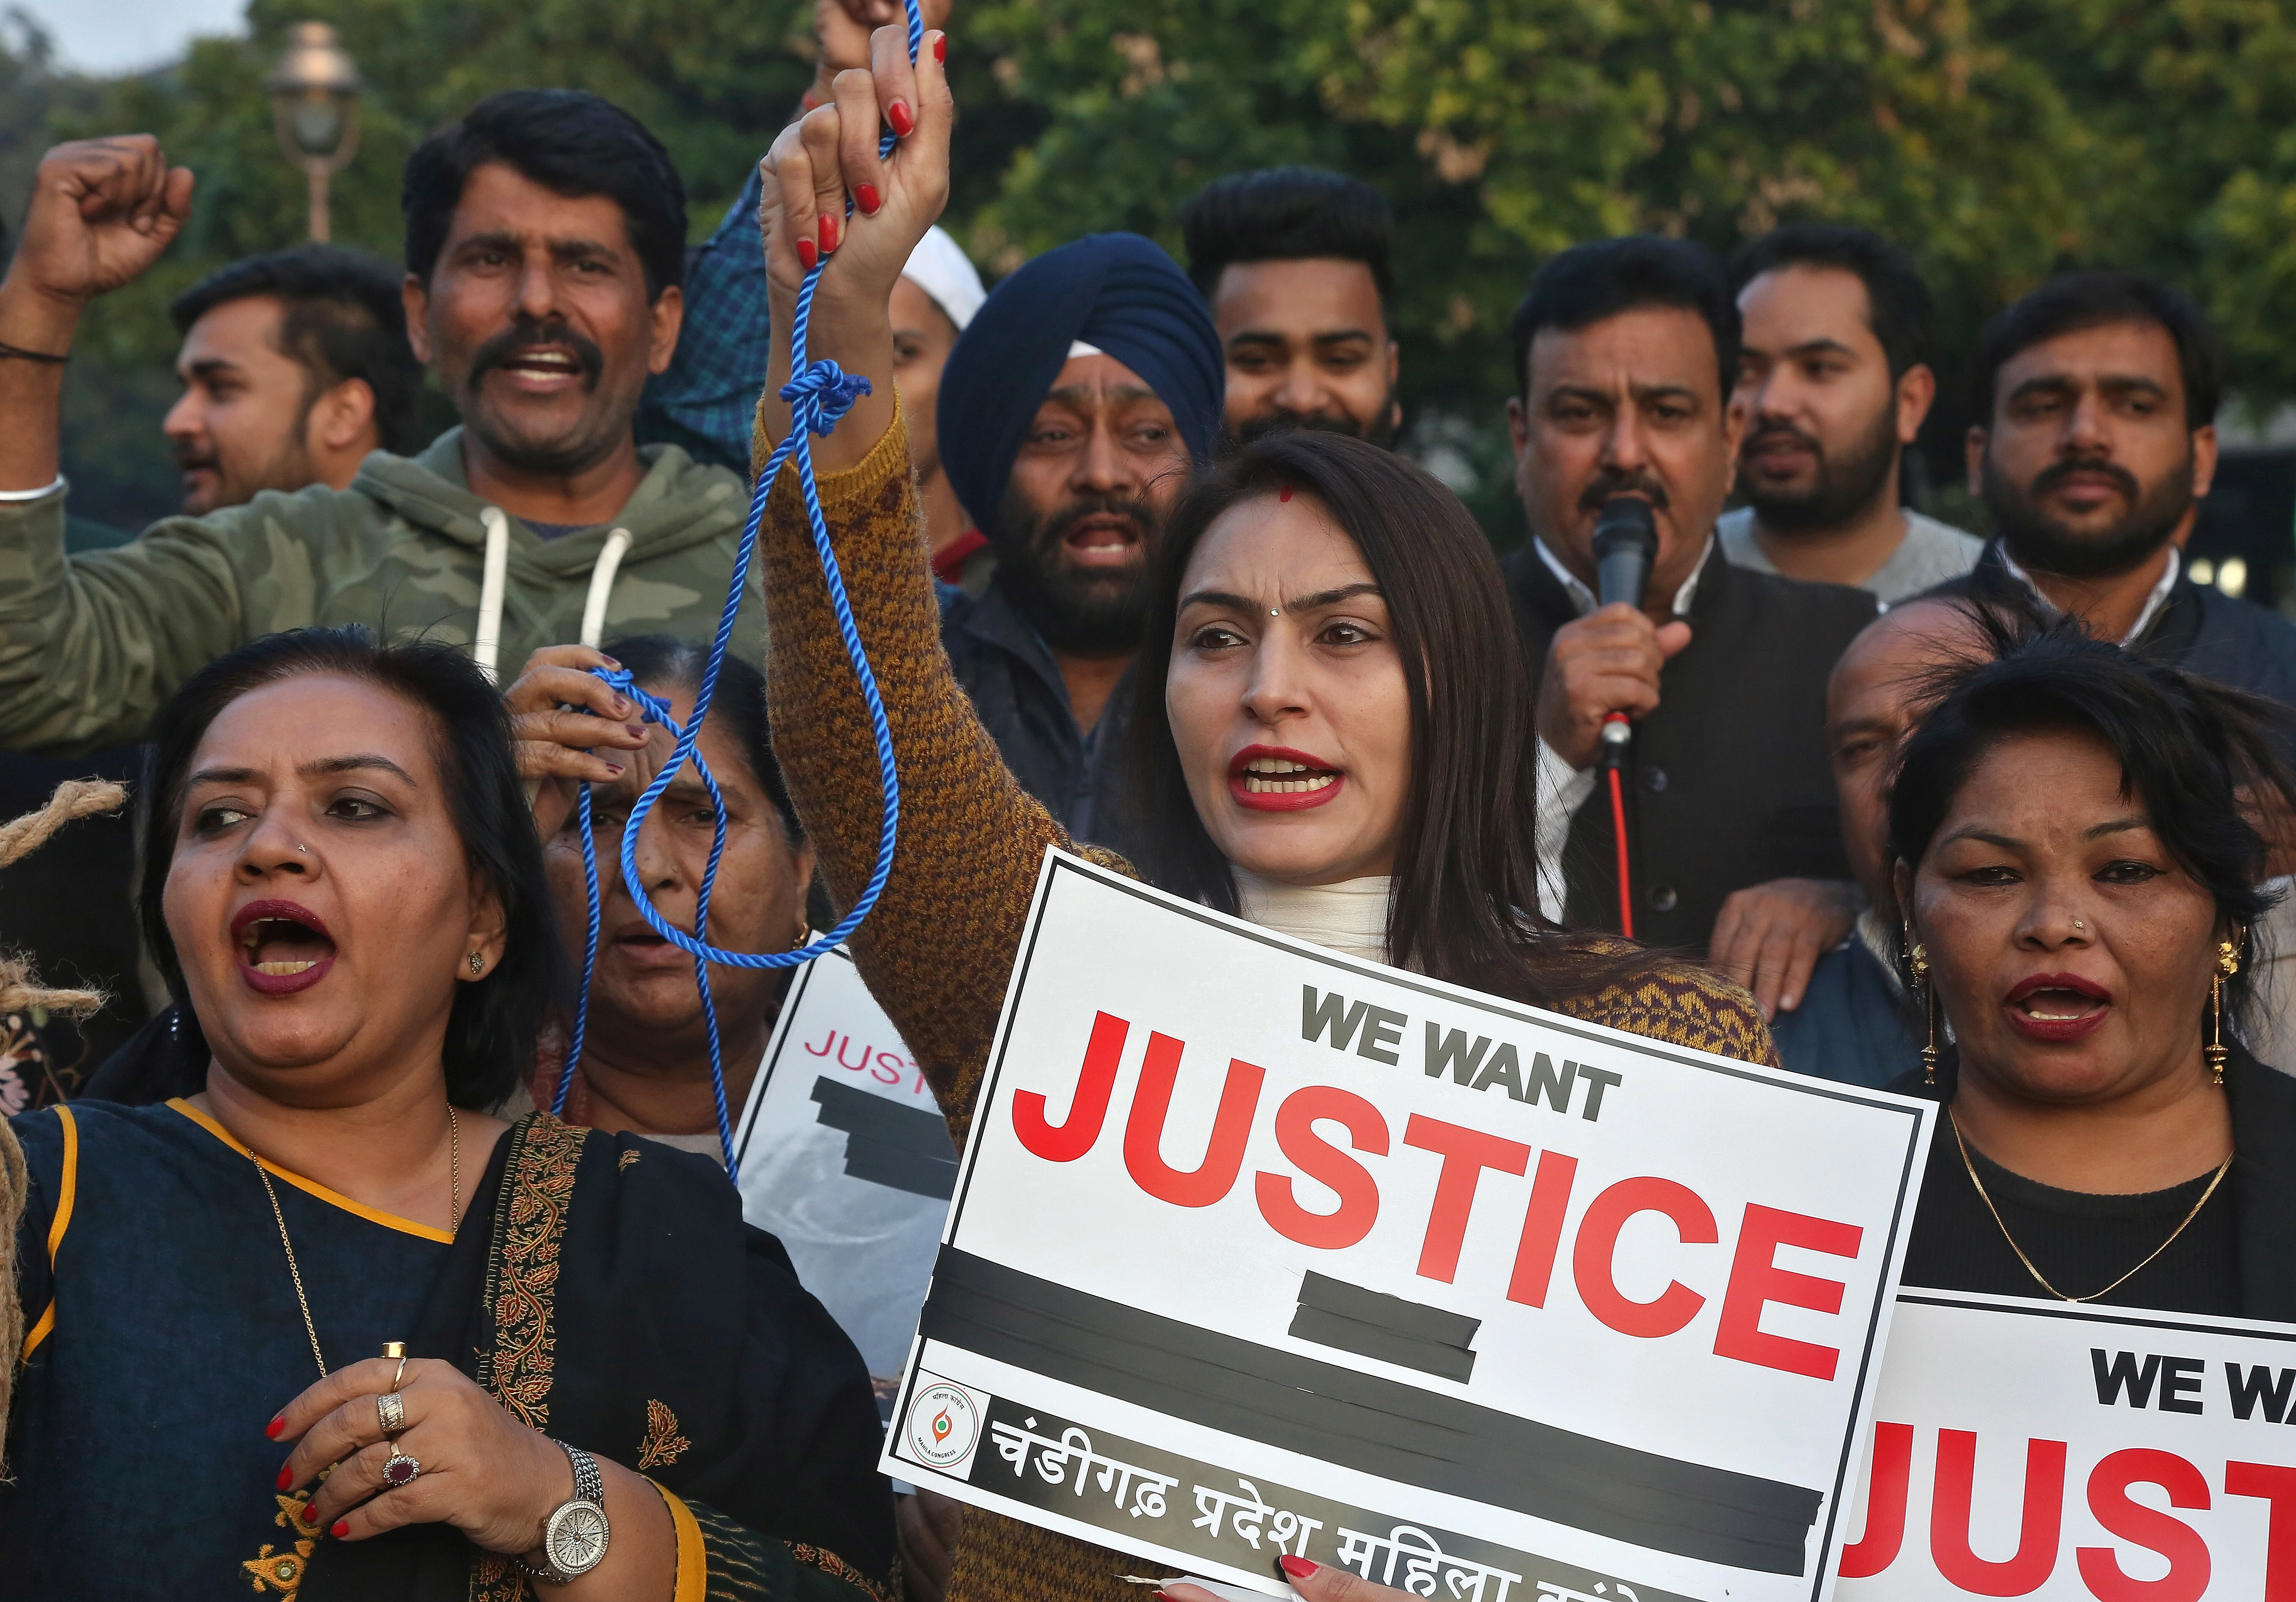 People shout slogans during a protest against the alleged rape and murder of a 27-year-old woman, in Chandigarh, India, December 2, 2019. REUTERS/Ajay Verma